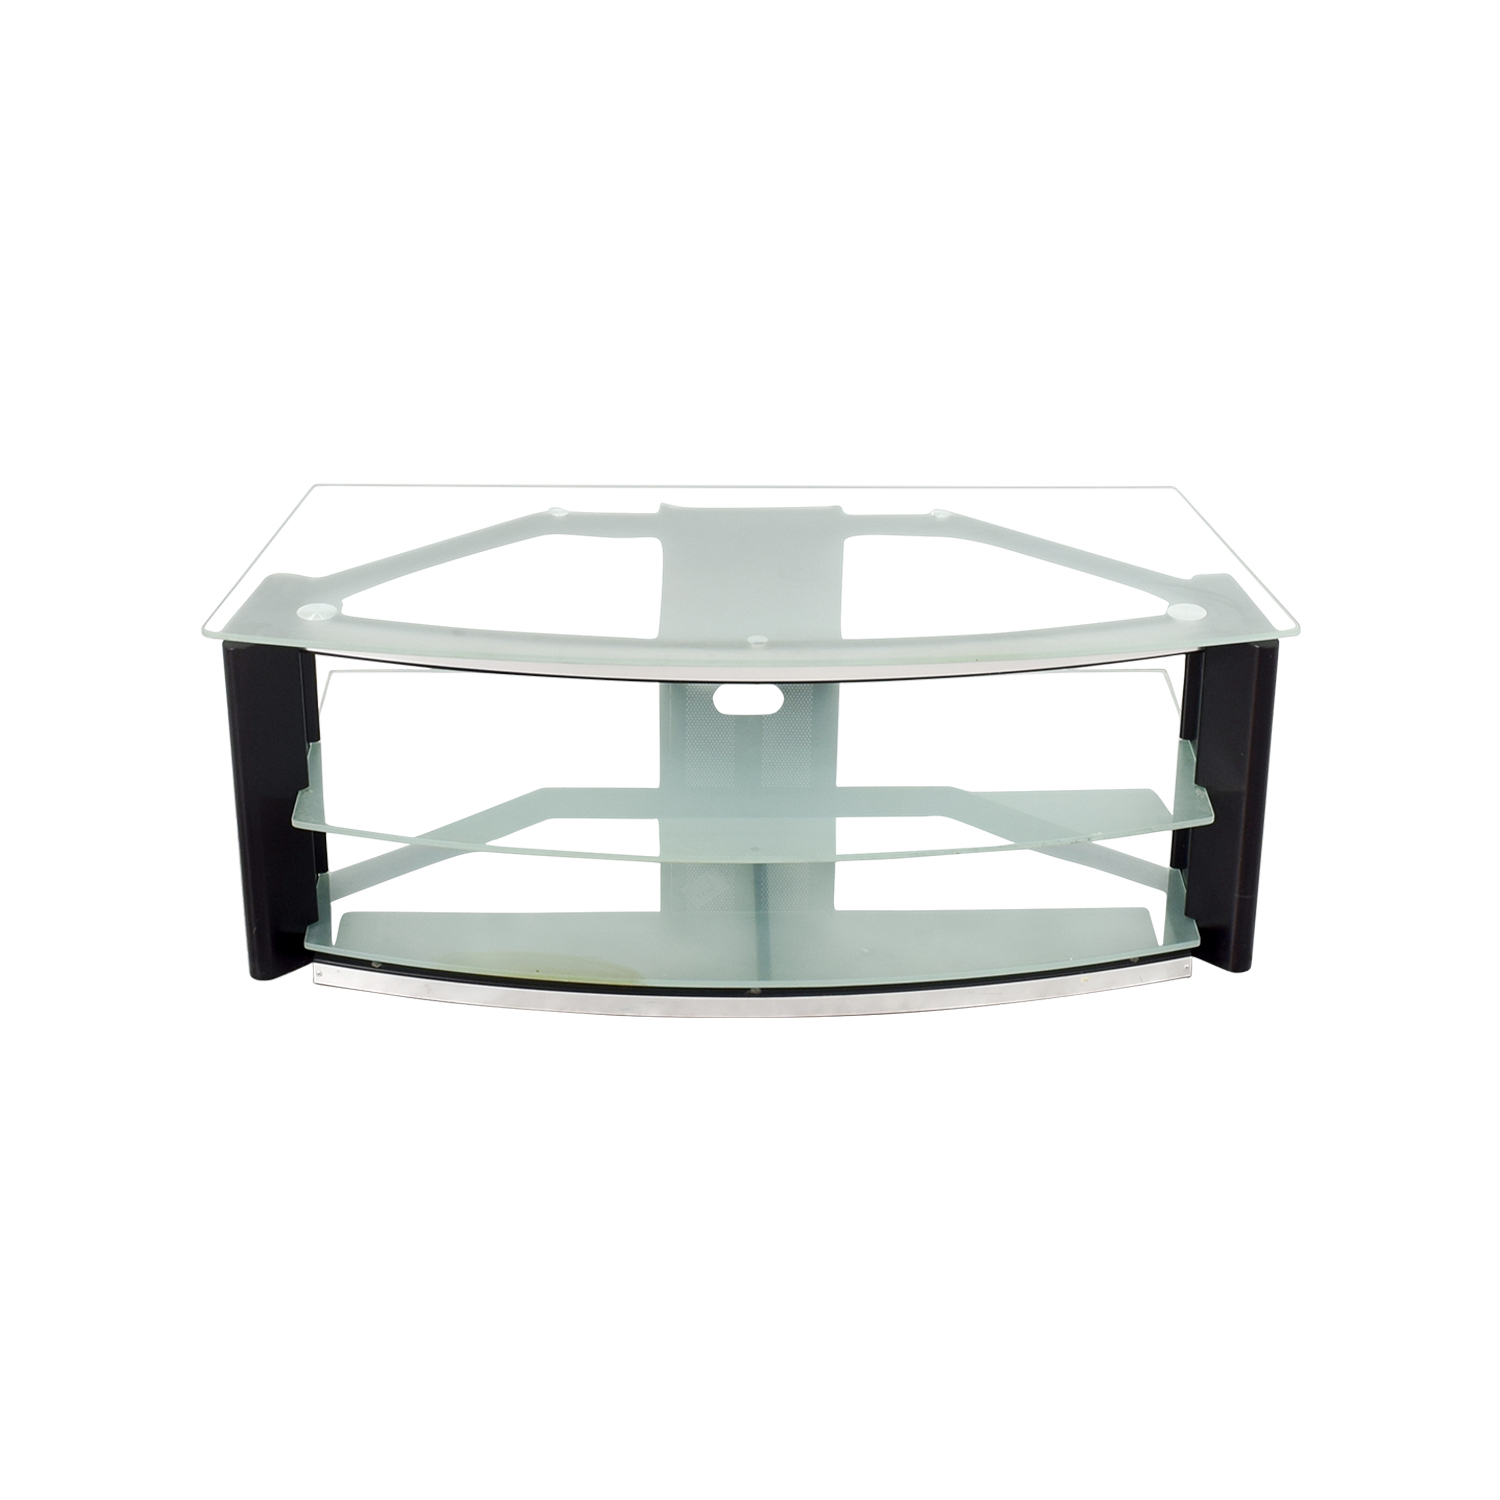 Best Buy Best Buy Glass and Metal TV Stand for sale